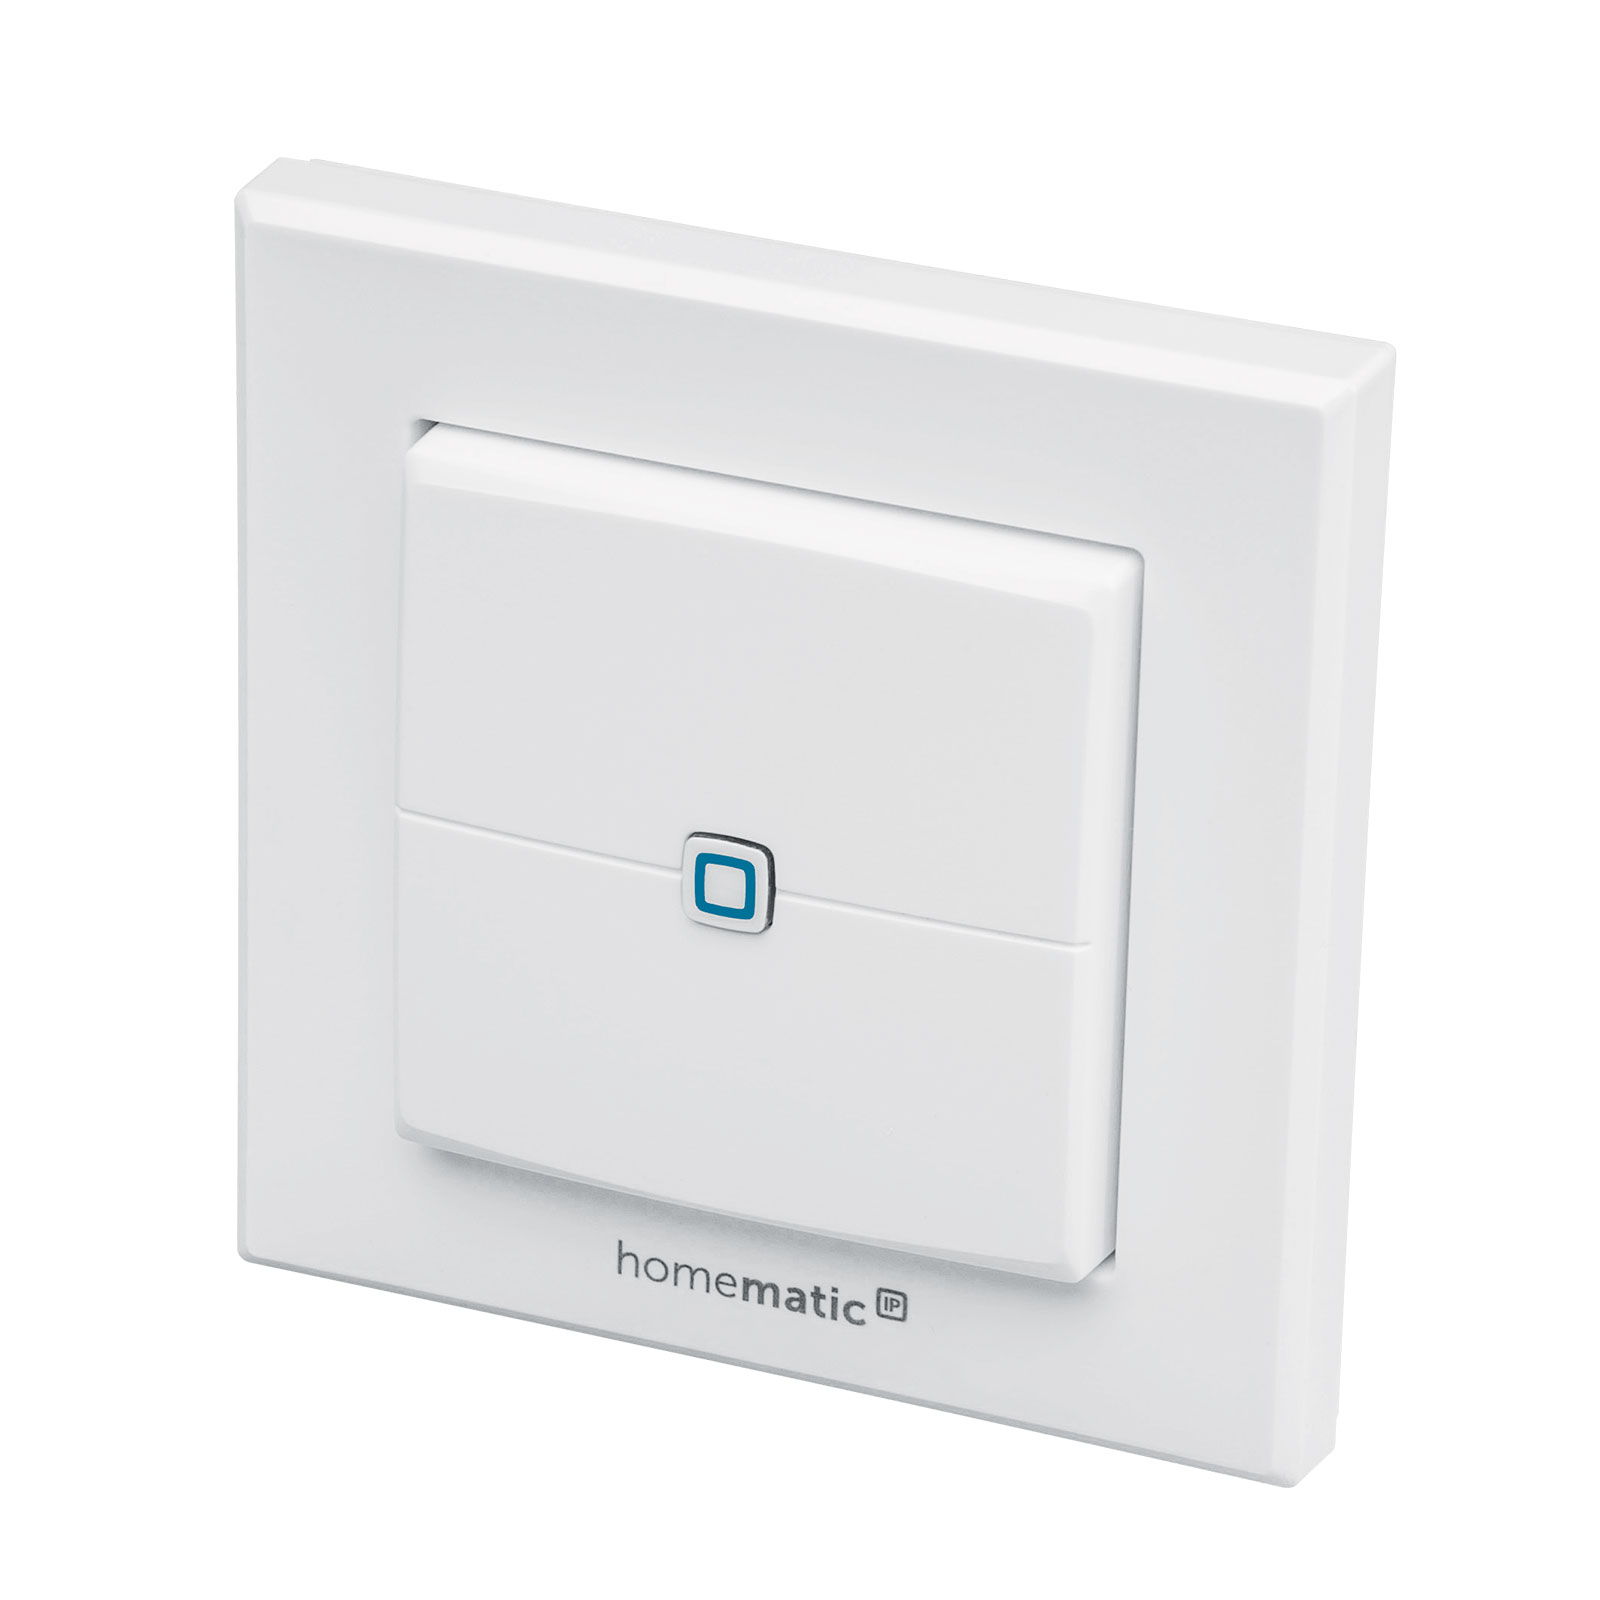 Homematic IP interruptor de pared, doble